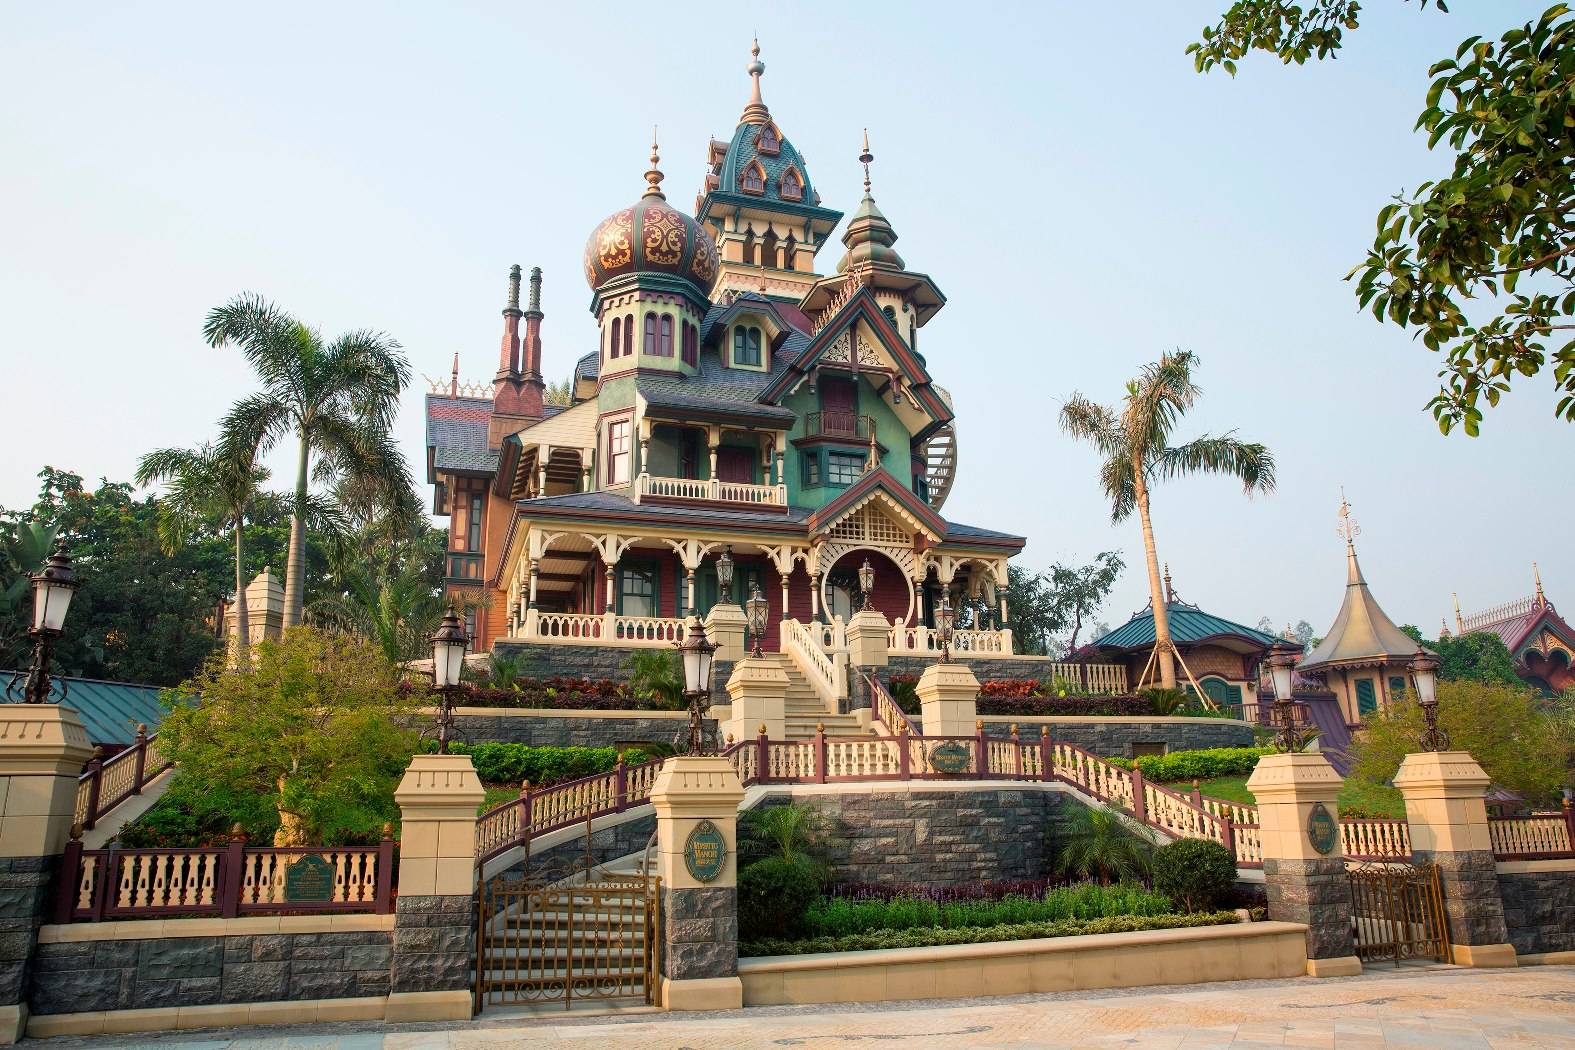 Mystic Manor Hong Kong Disneyland  Mystic Point  Haunted Mansion